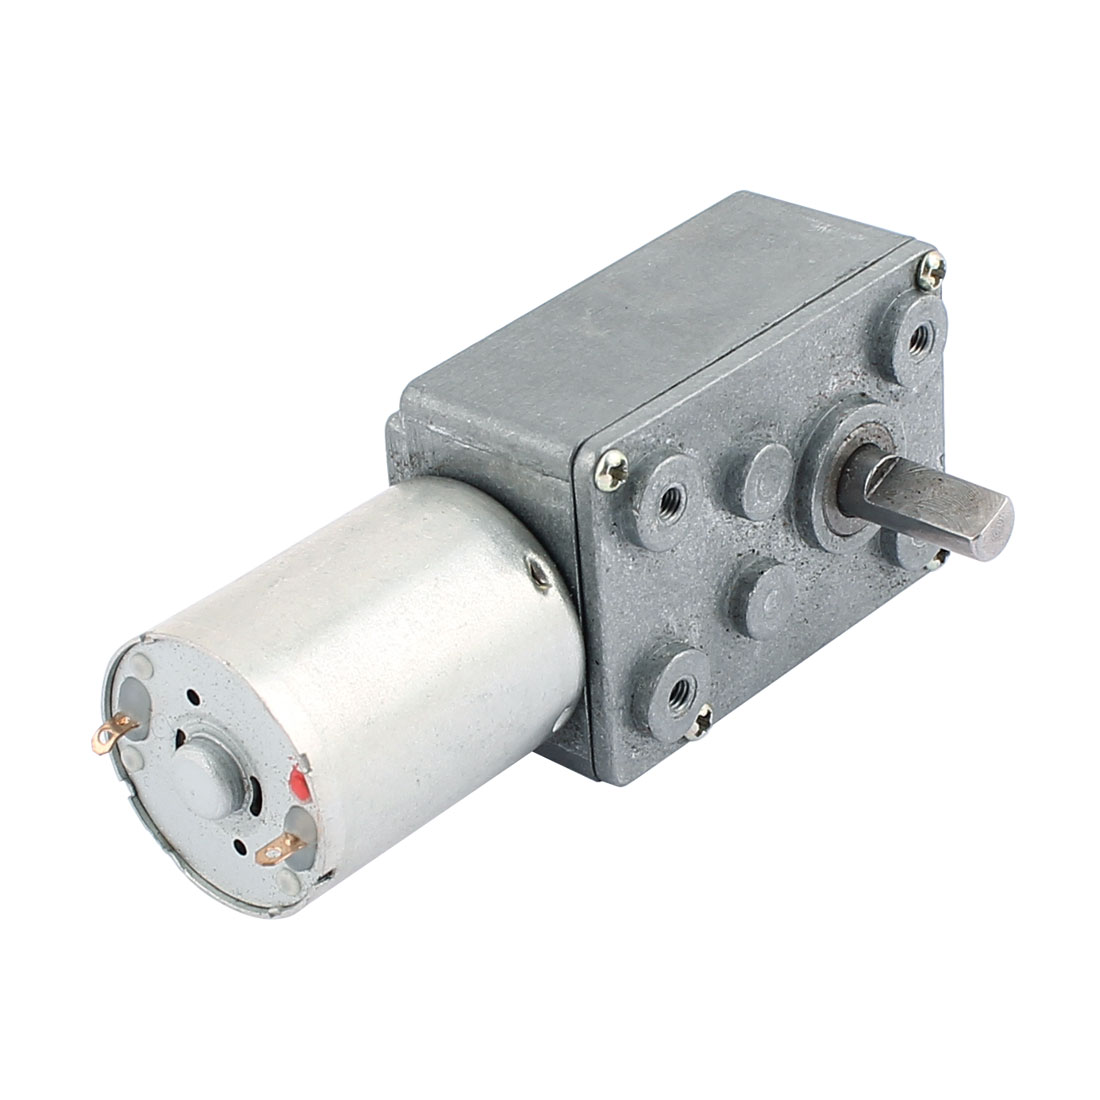 DC 12V 60RPM 6mmx13mm D-Shape Shaft Electric Power Turbo Worm Geared Motor